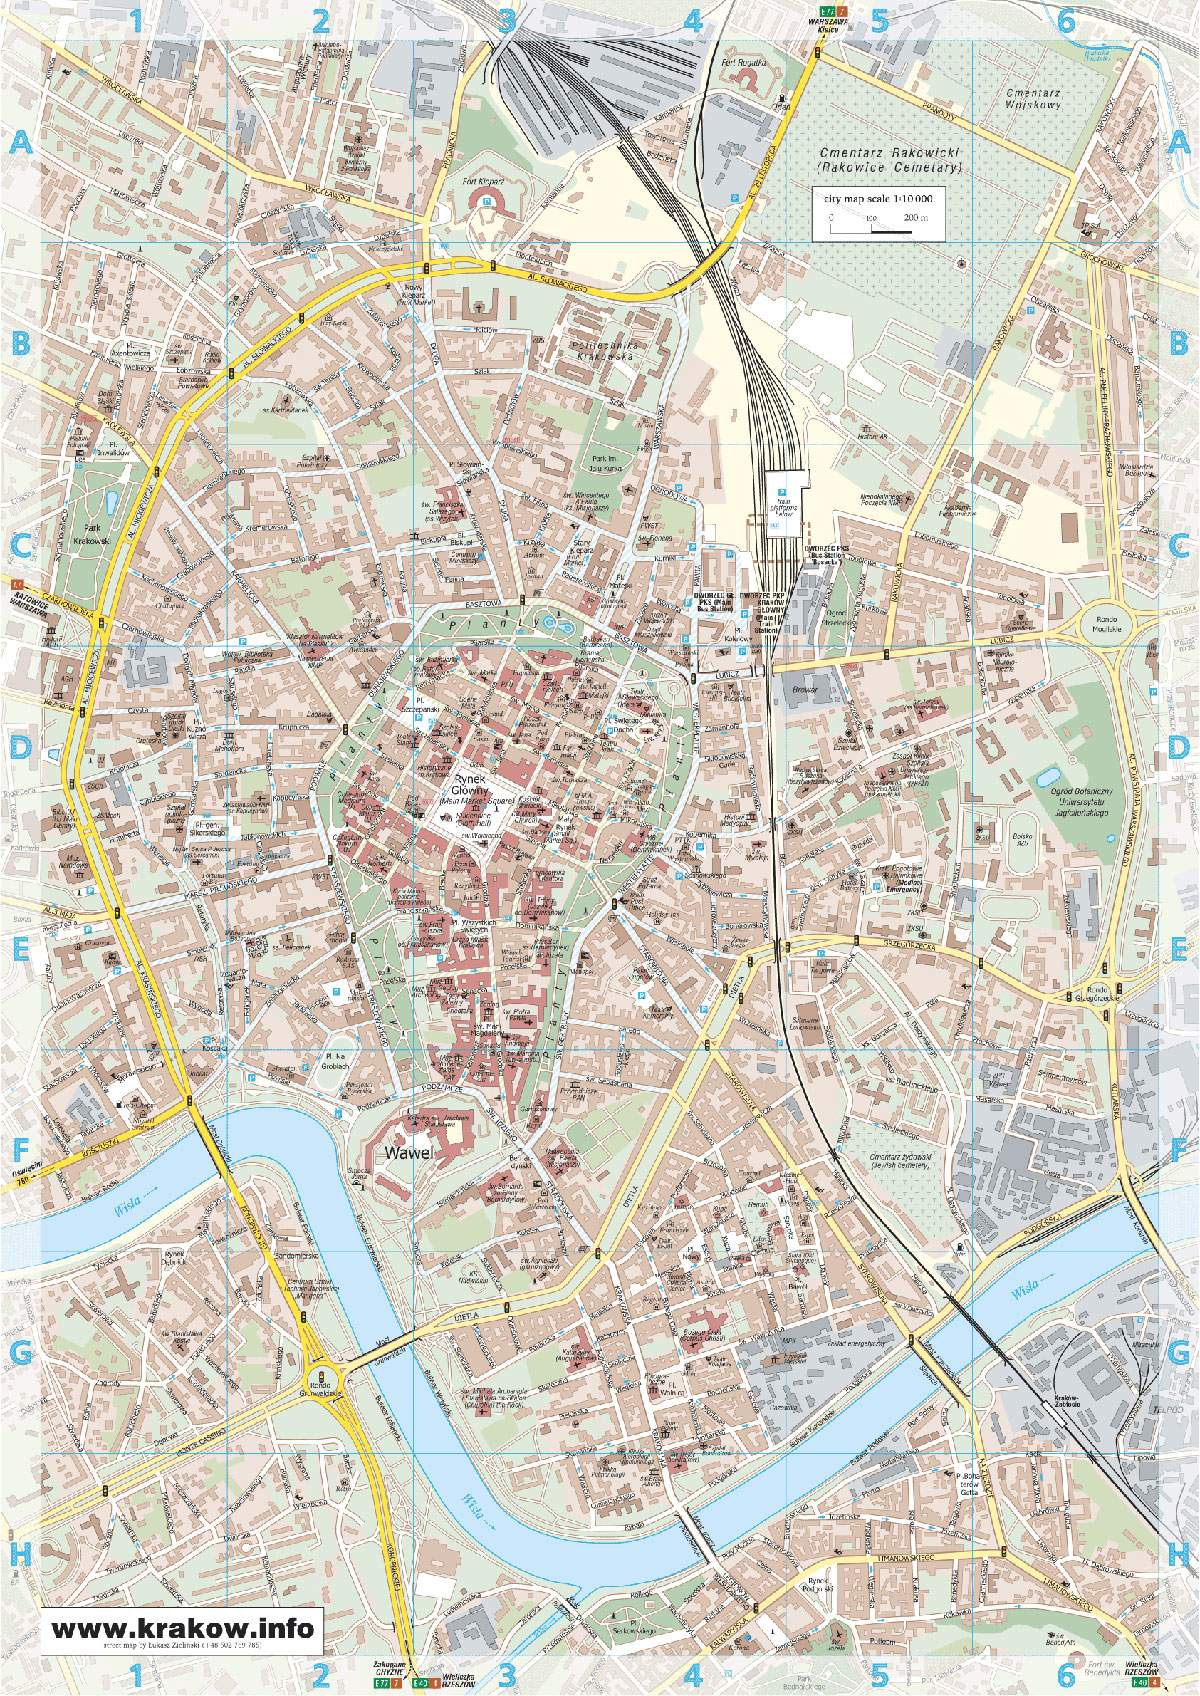 Large Krakow Maps For Free Download And Print High Resolution